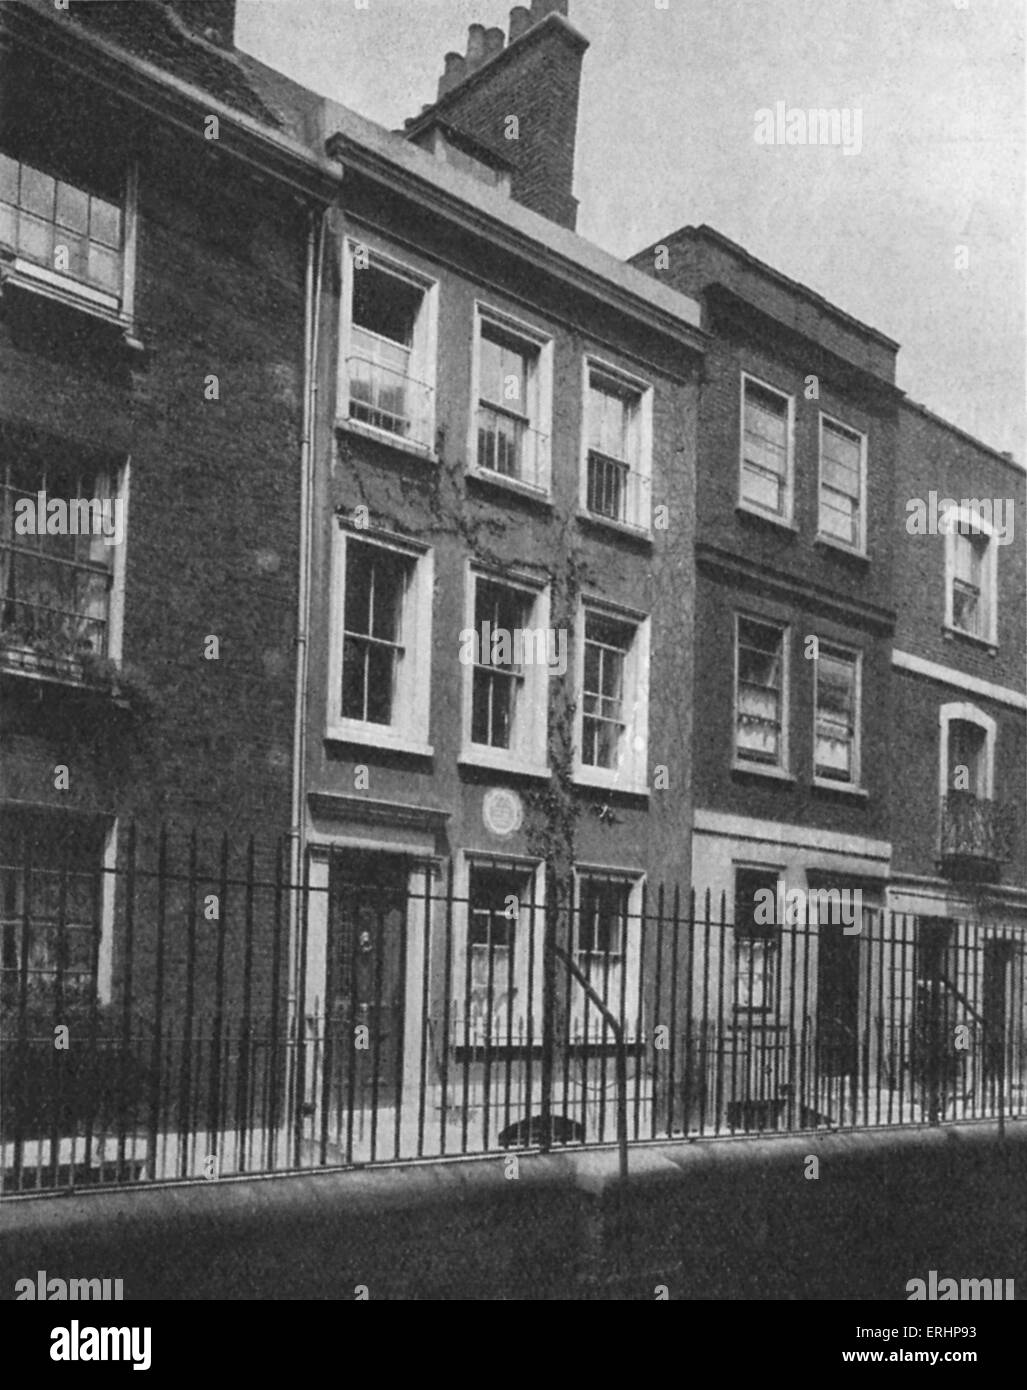 Leigh Hunt - Leigh Hunt 's house in Upper Cheyne Row, Chelsea, London. Lived here in 1894 during a time of financial - Stock Image